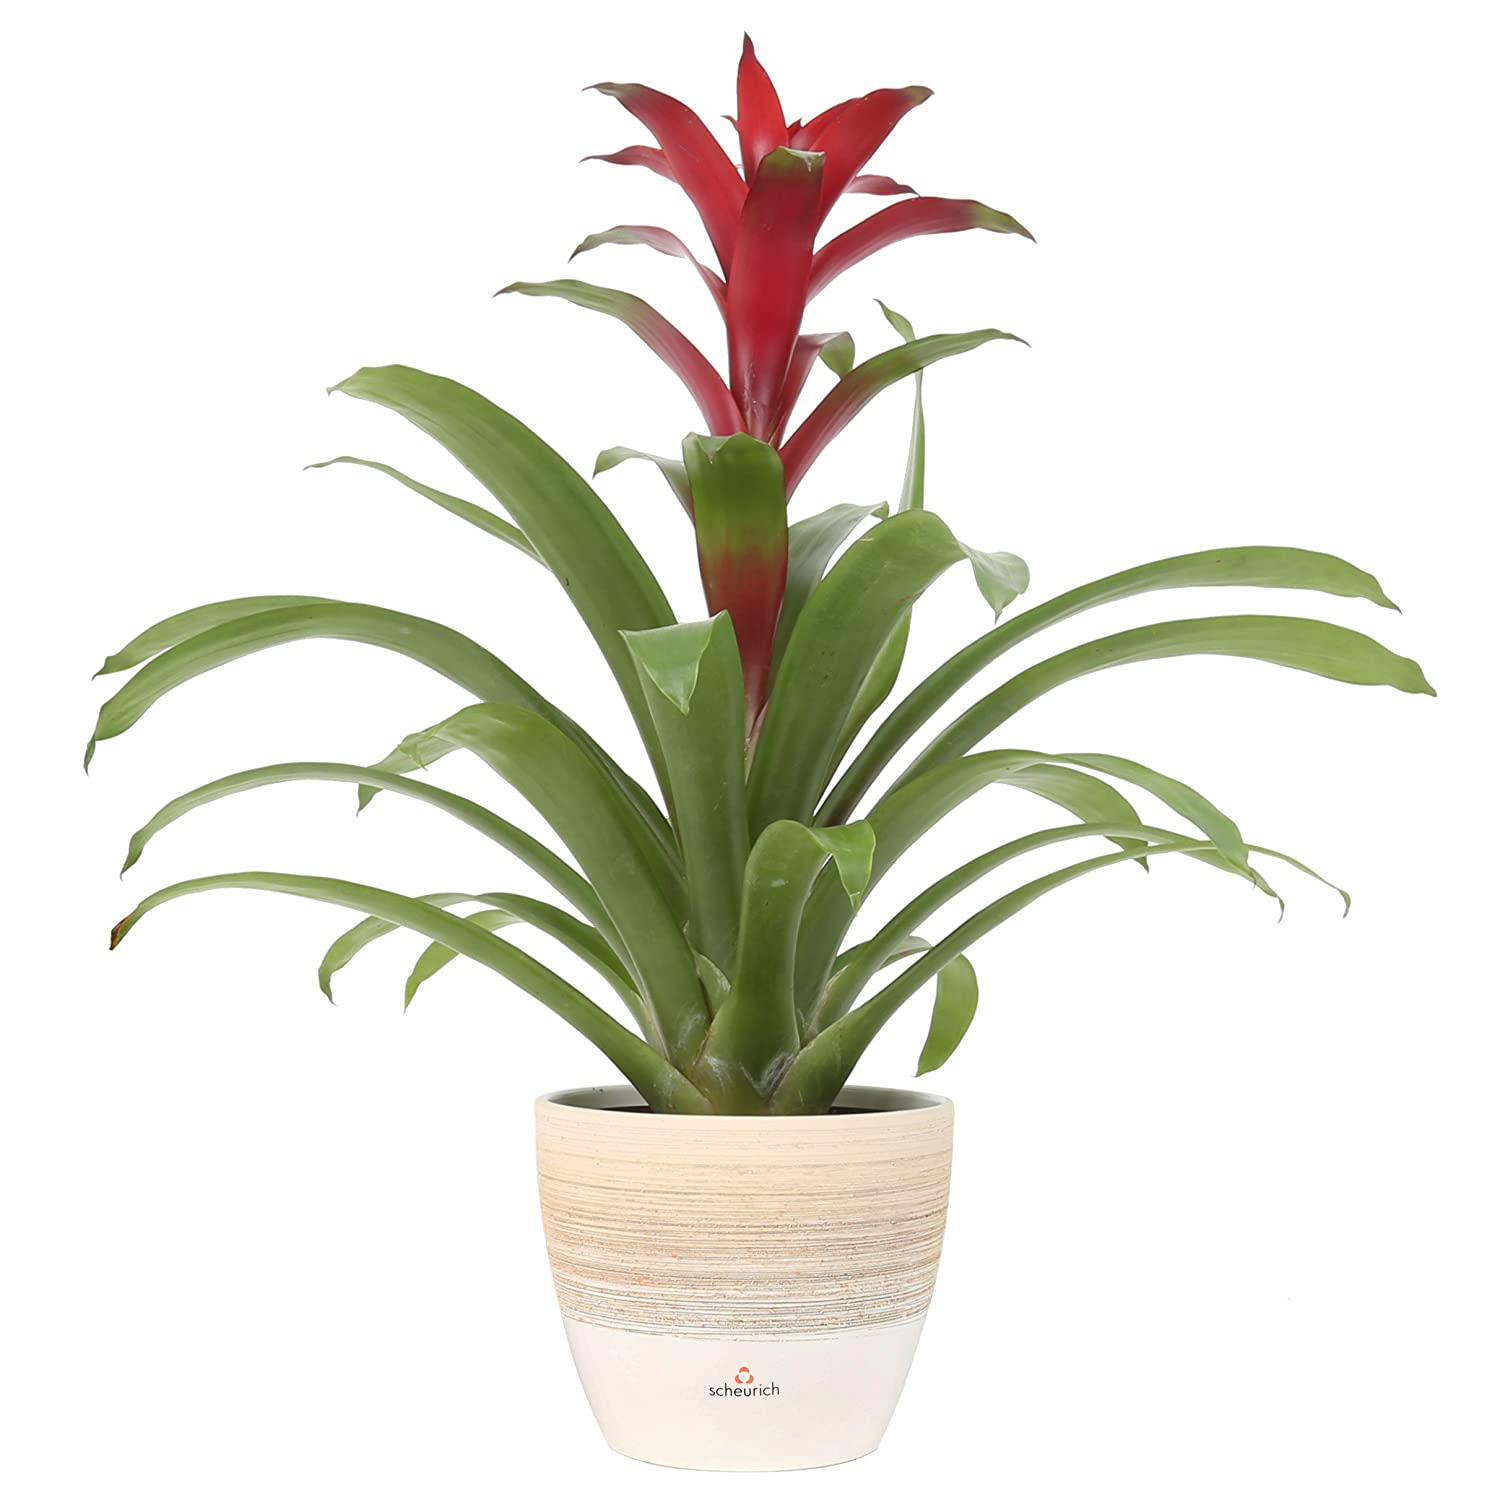 Costa Farms Flowering Bromeliad, Guzmania, Red, in Premium Scheurich Ceramic, 20-Inches Tall